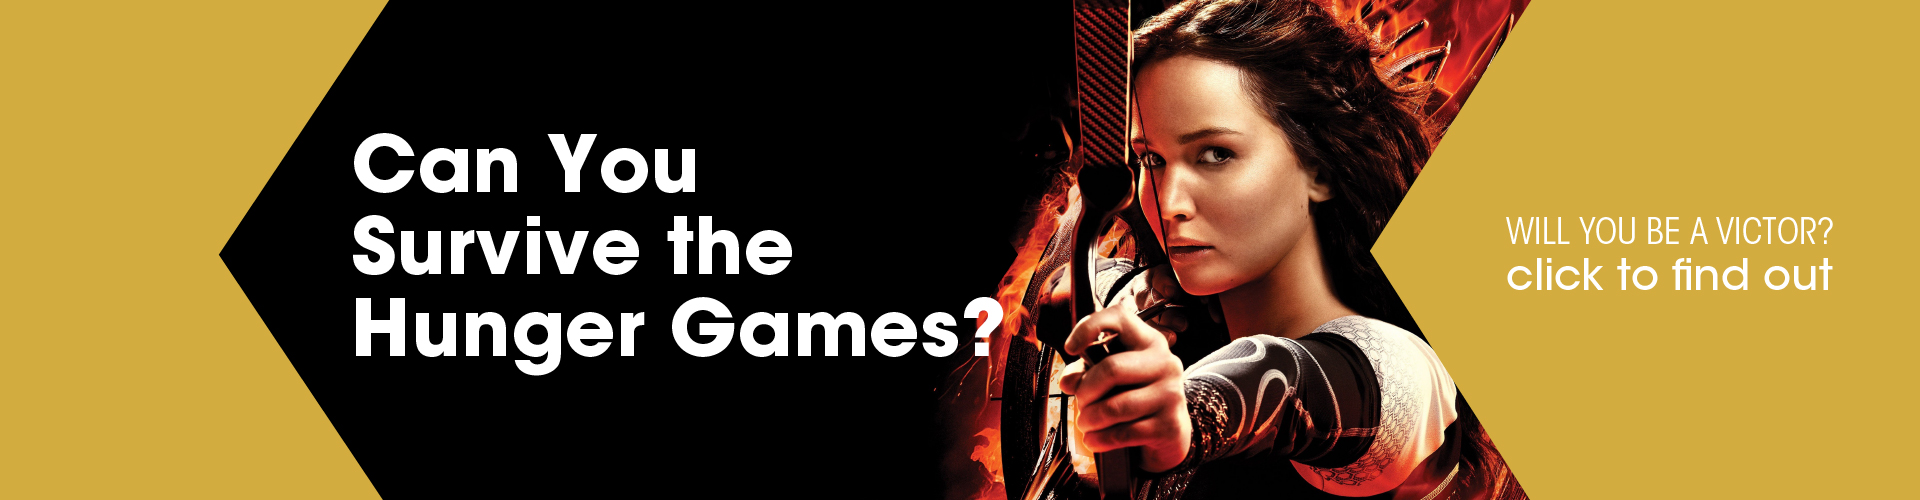 can you survive the hunger games